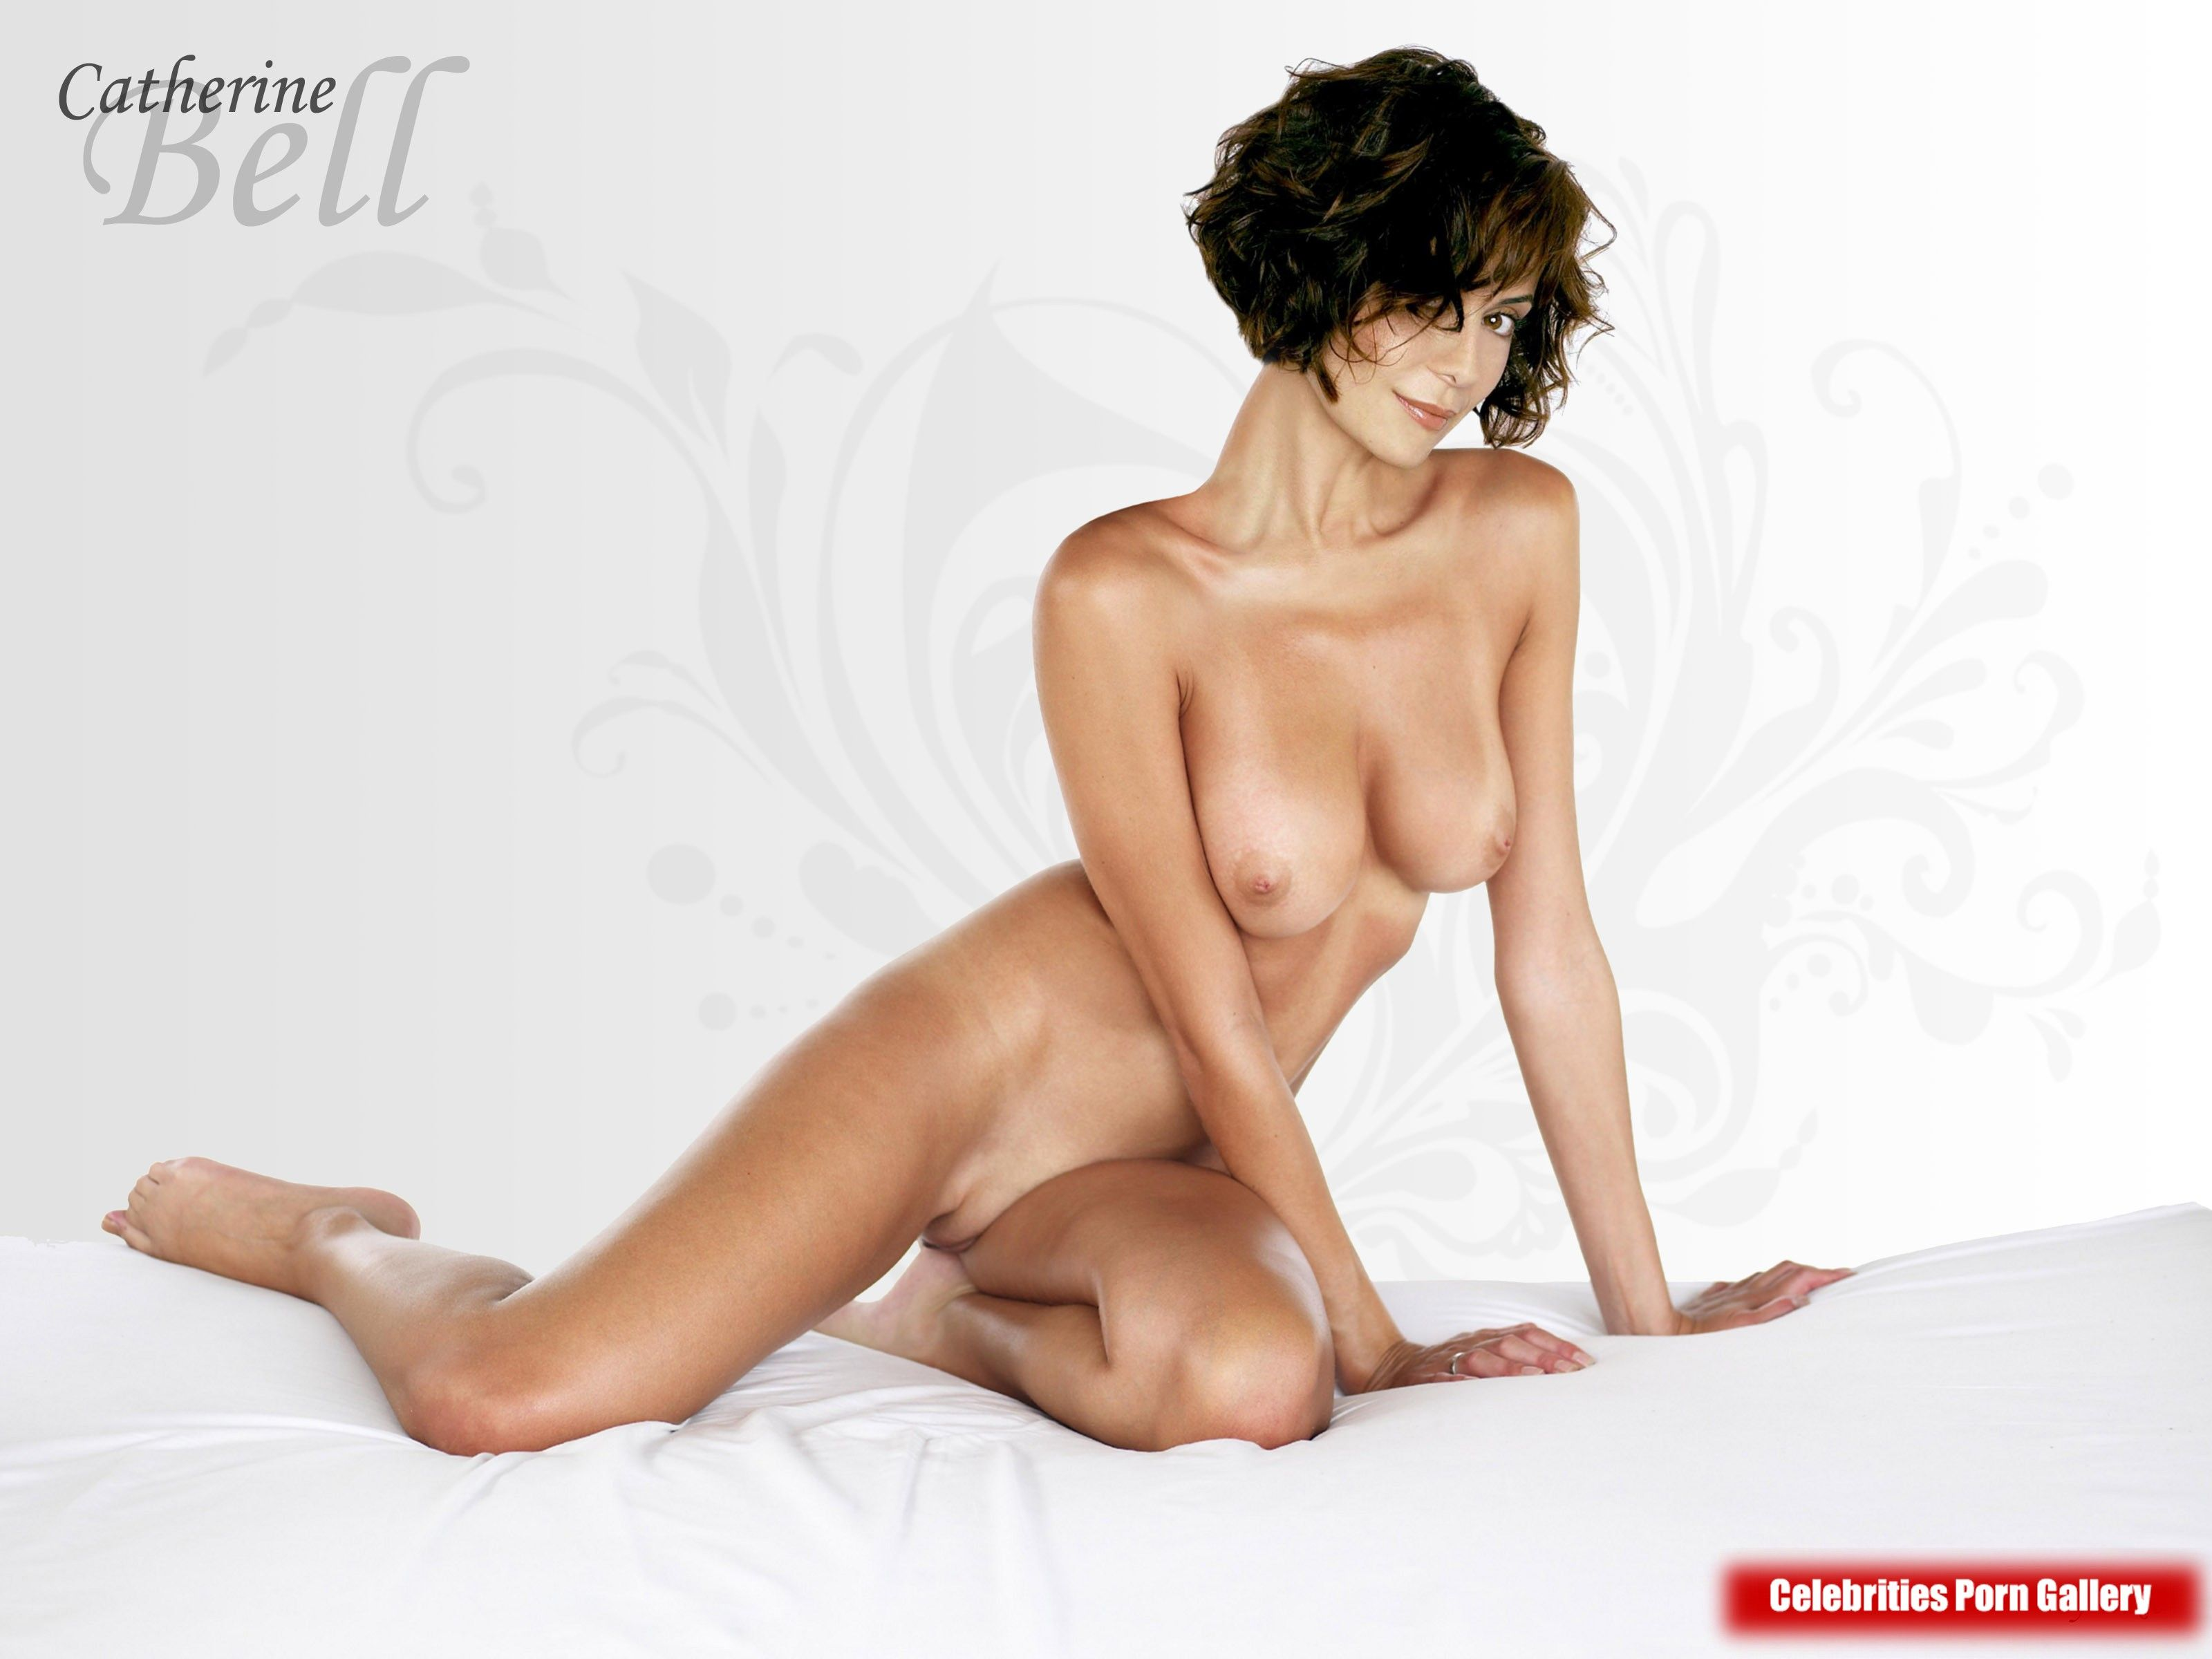 Catherine Bell images CATHERINE BELL